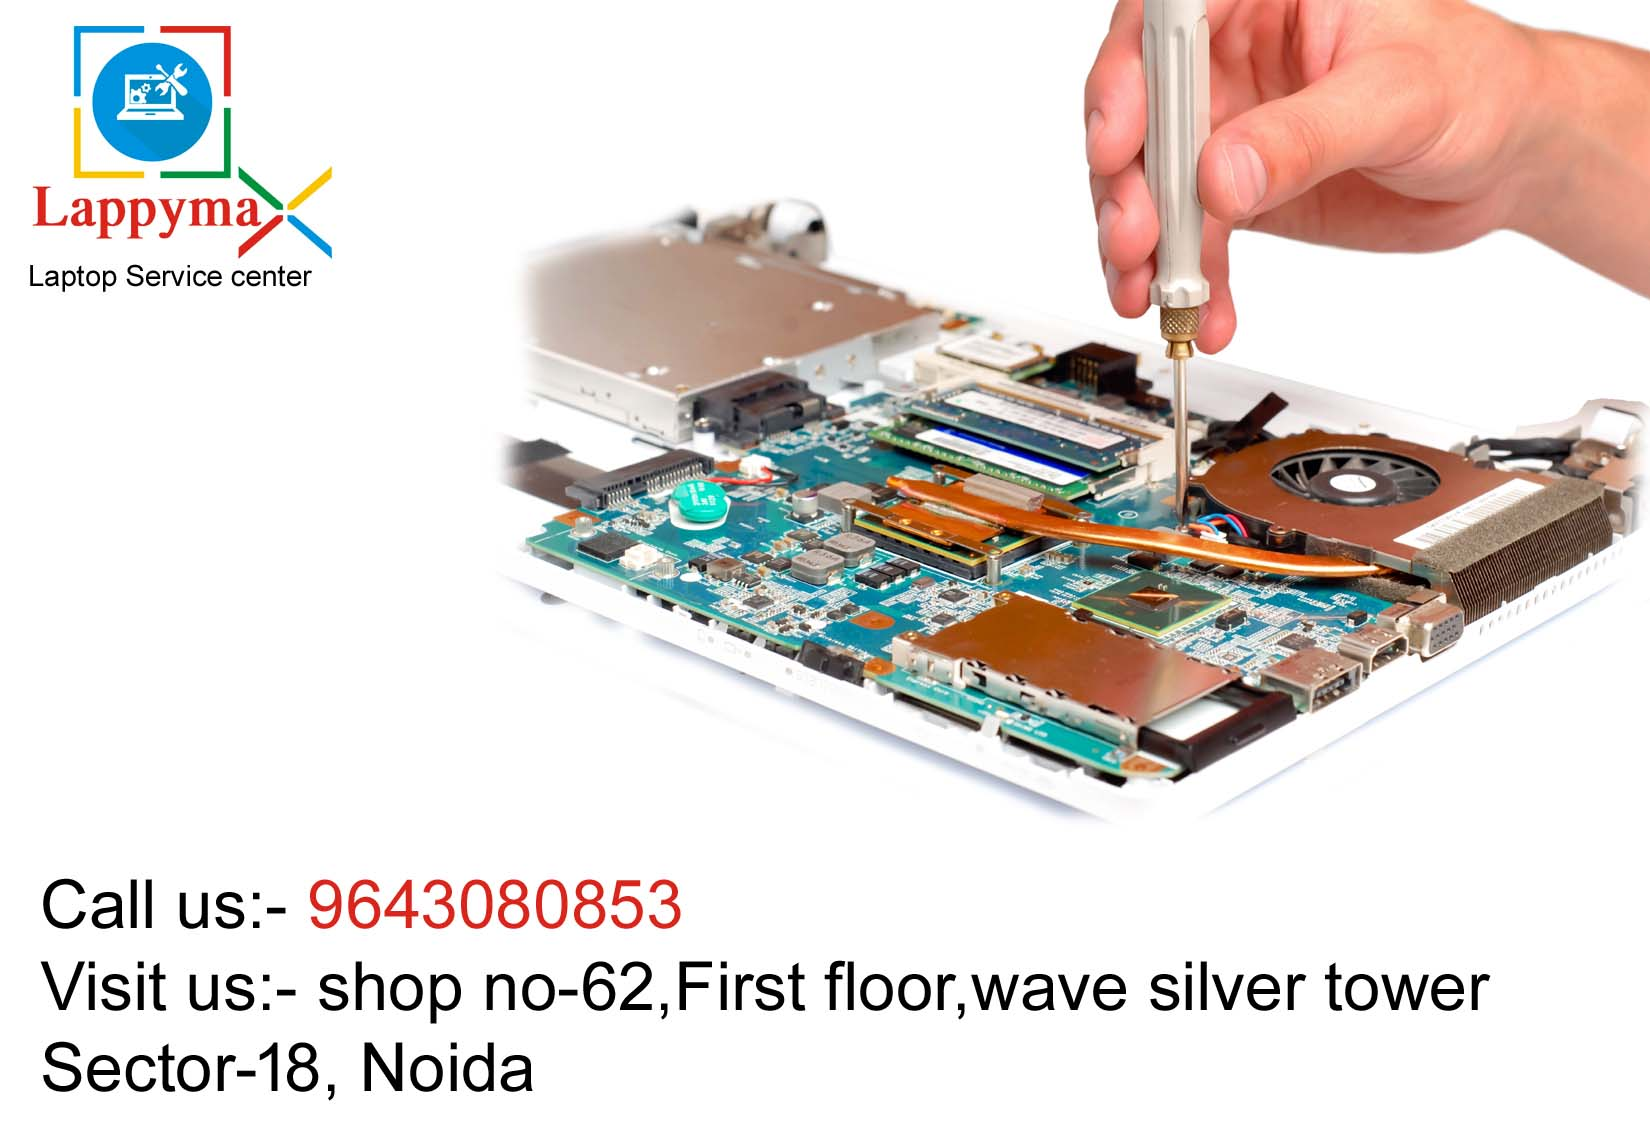 Dell Service center in Noida sector 18